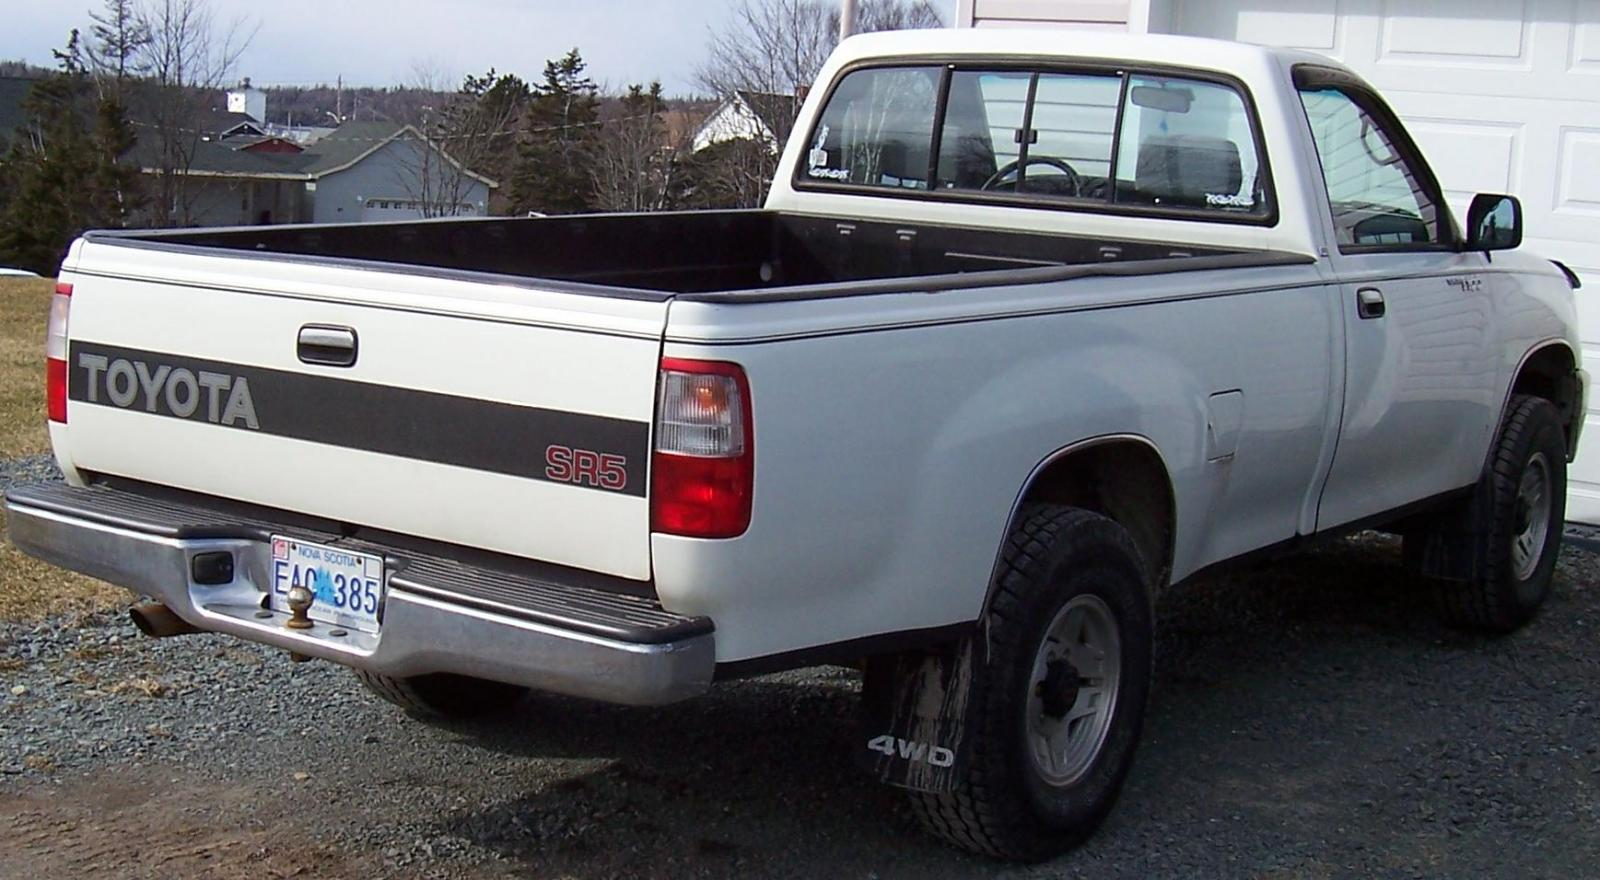 1994 Toyota T100 Information And Photos Zombiedrive